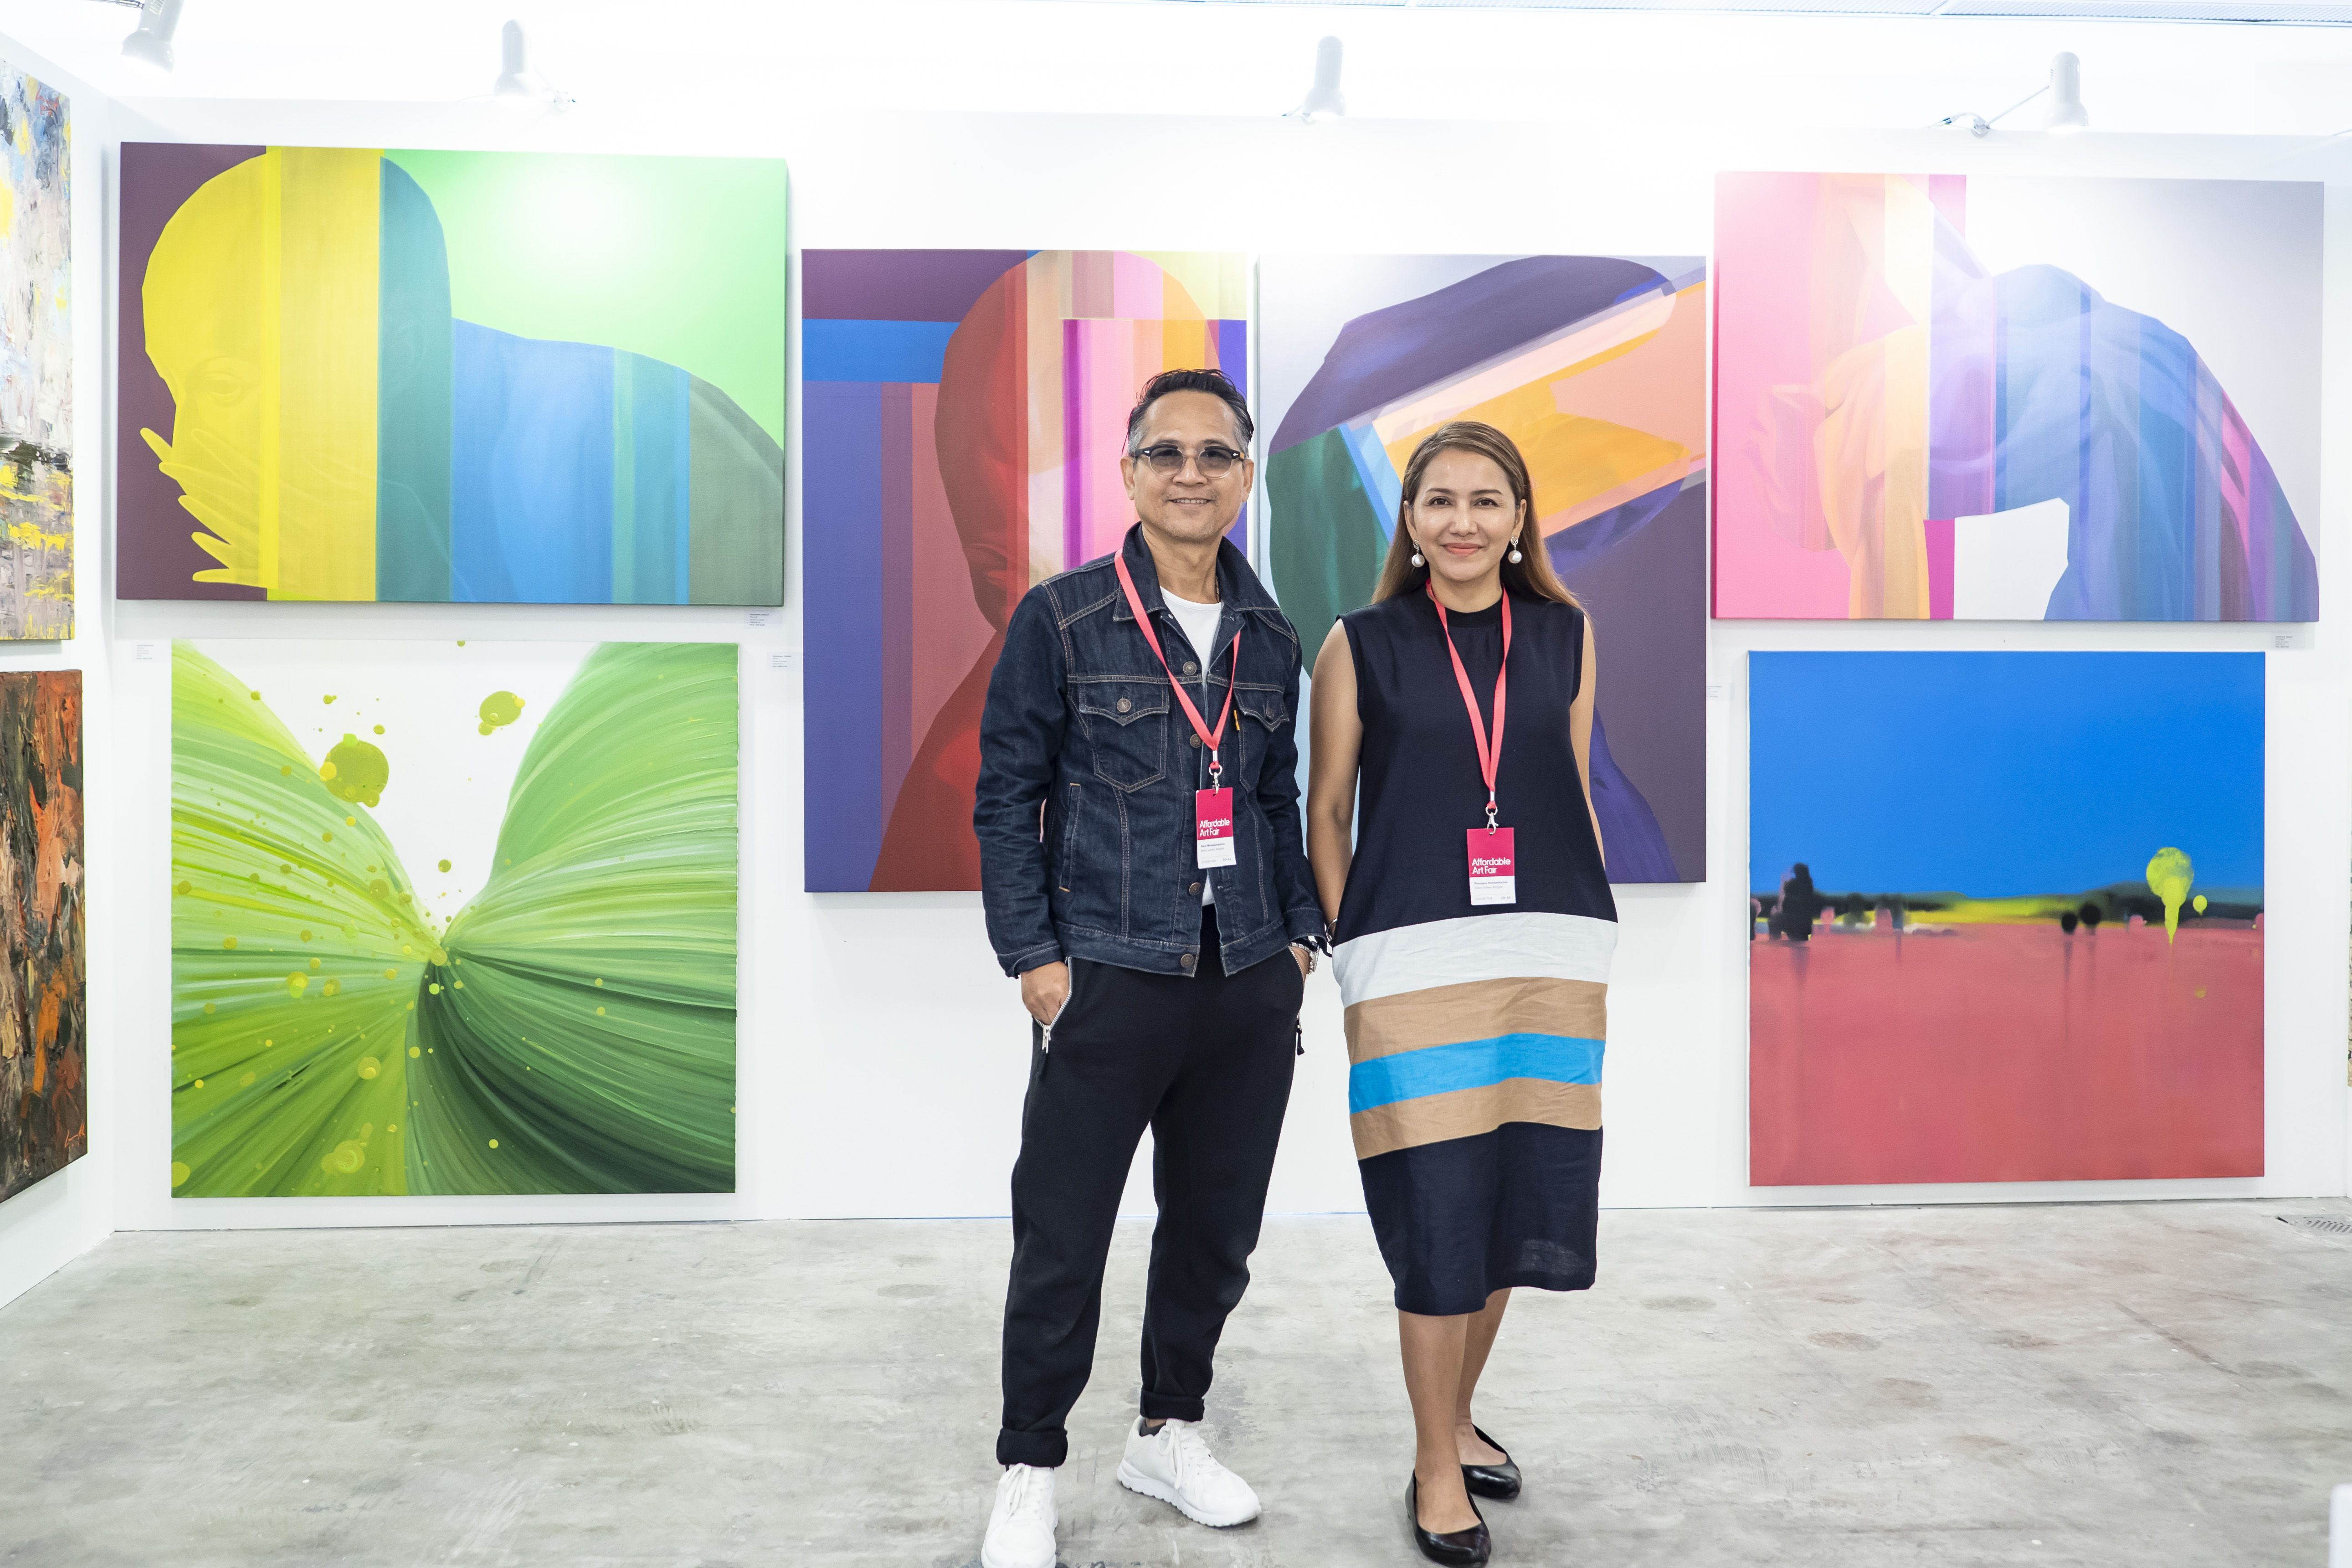 Affordable Art Fair Singapore 2018 Affordableartfair Affordableartfairsingapore Aafsingapore Bringyo Affordable Art Fair Singapore Art Art For Sale Online